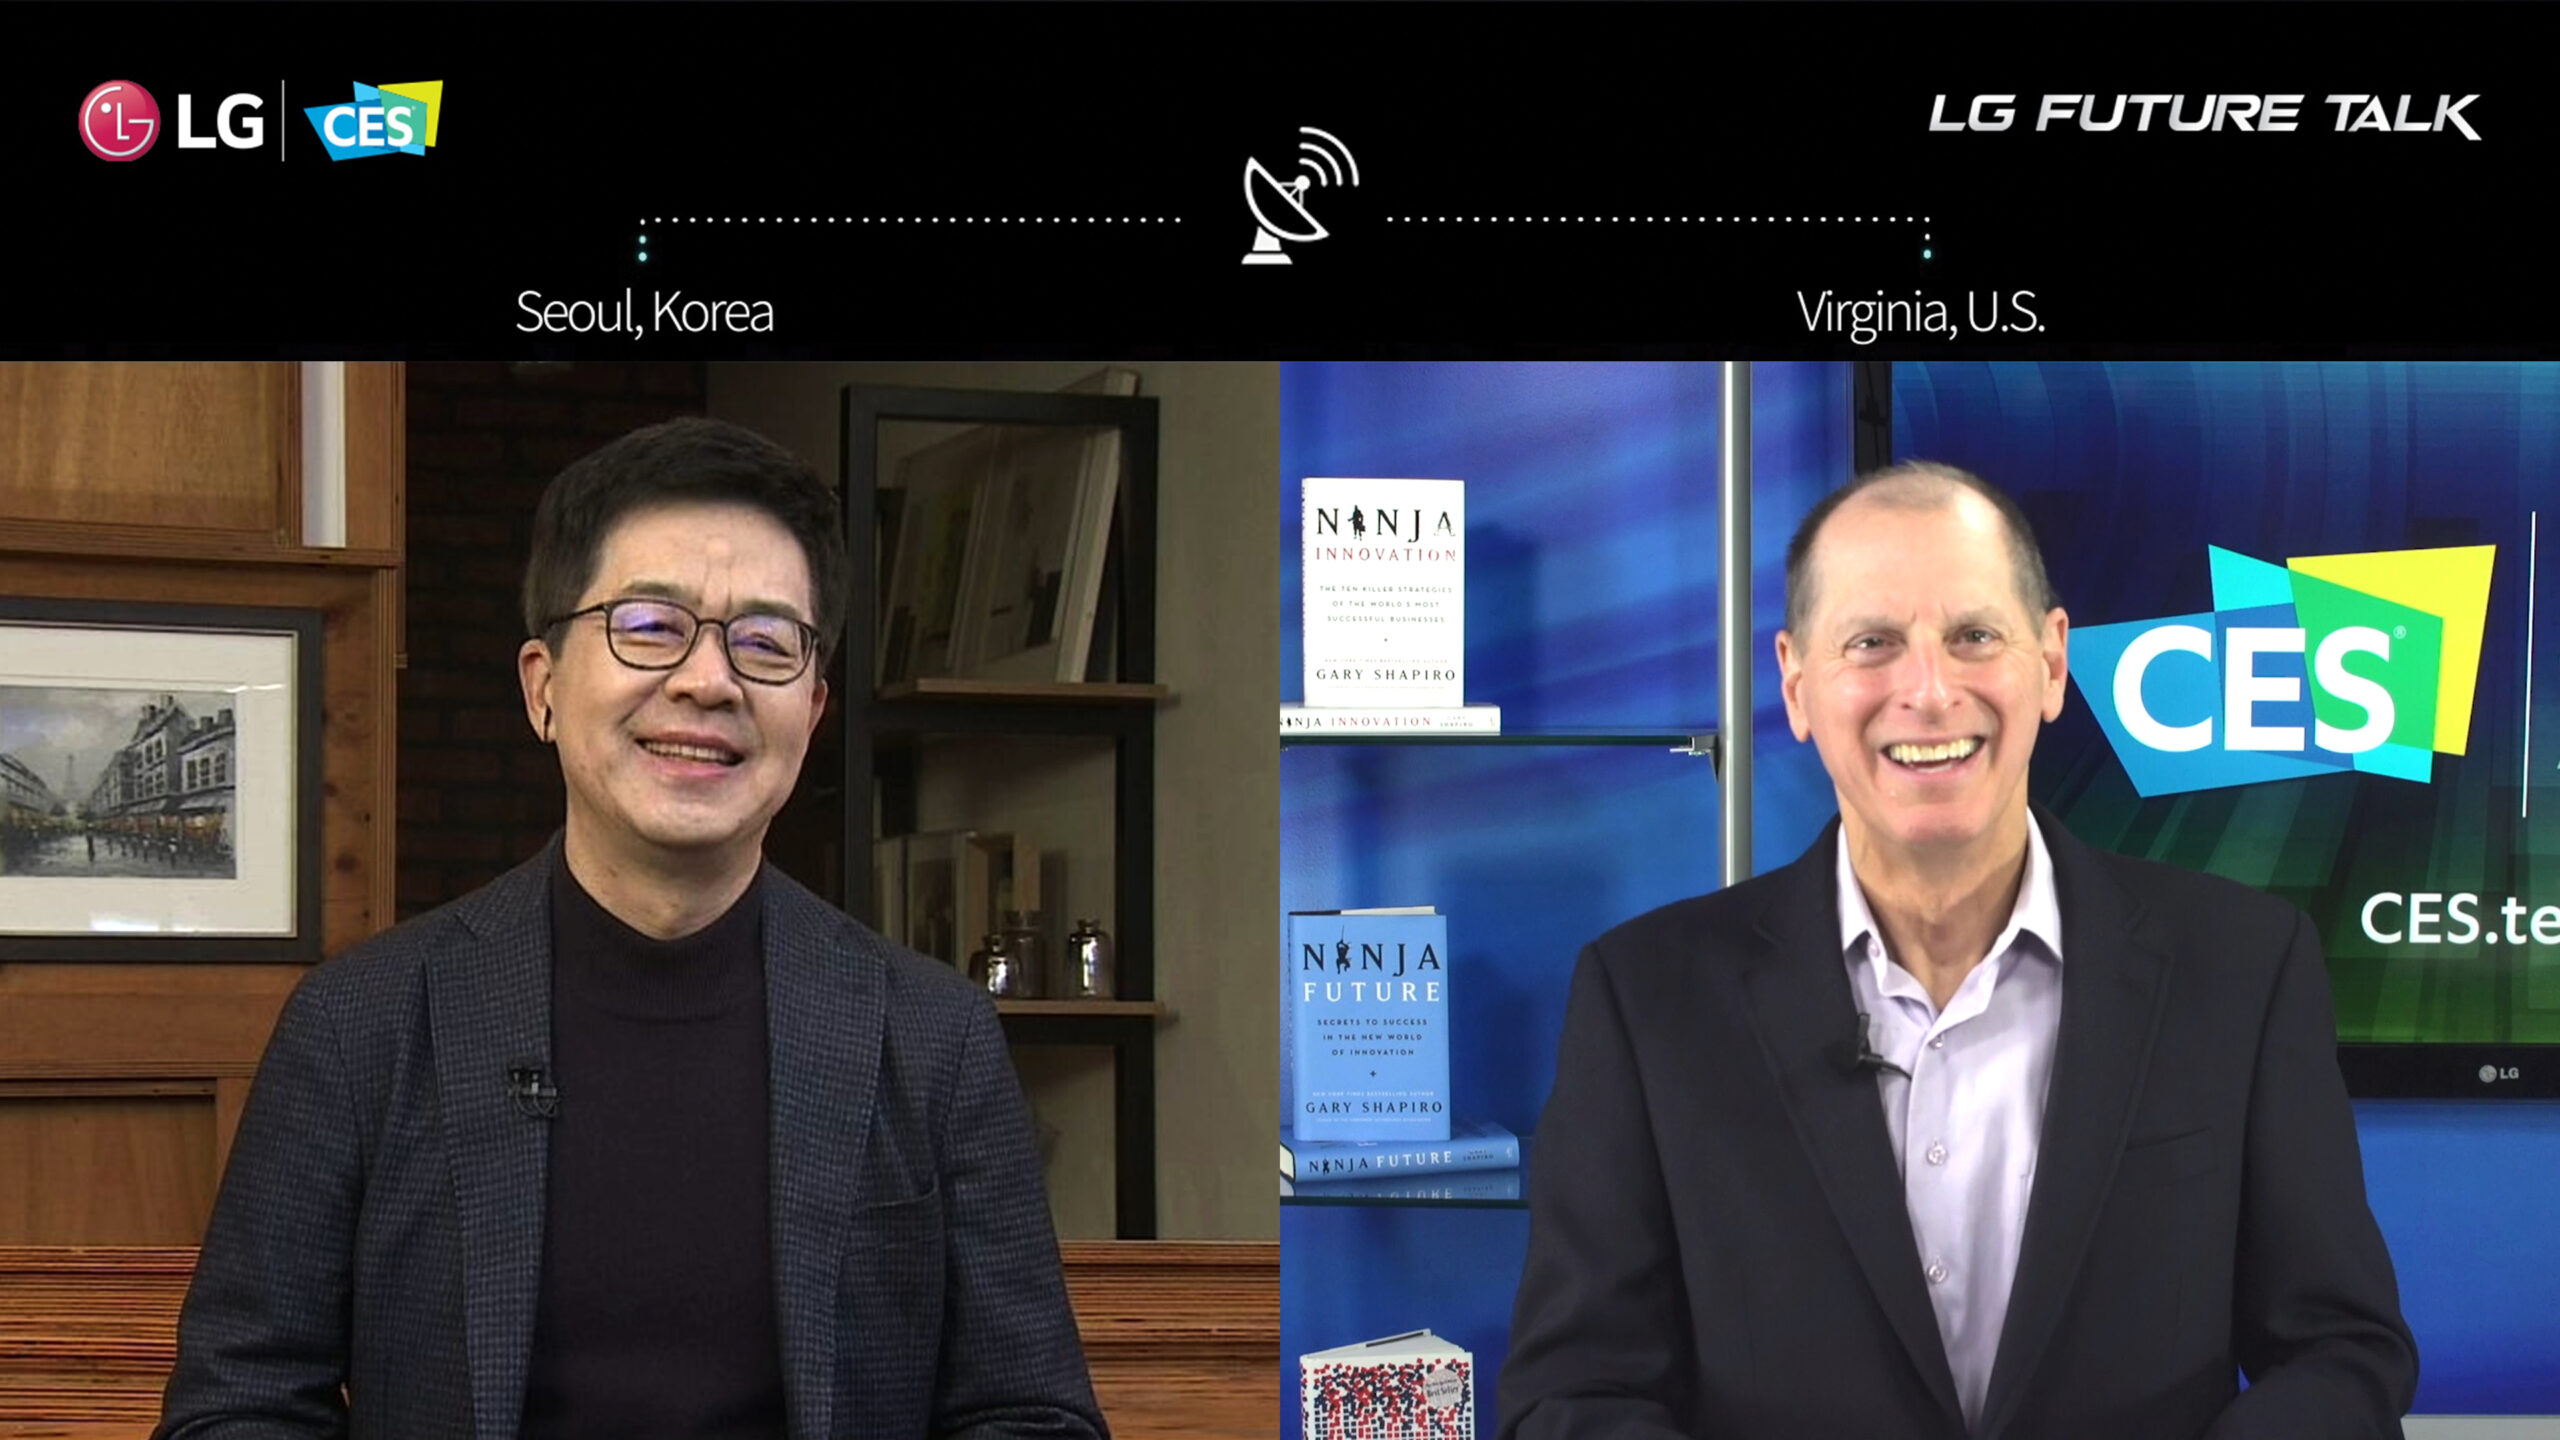 Dr. I.P. Park, president and CTO of LG Electronics, and Gary Shapiro, president and CEO of CTA, discussing the growing power of partnerships across disciplines and industries to deliver what is right for consumers via an LG Future Talk video call.